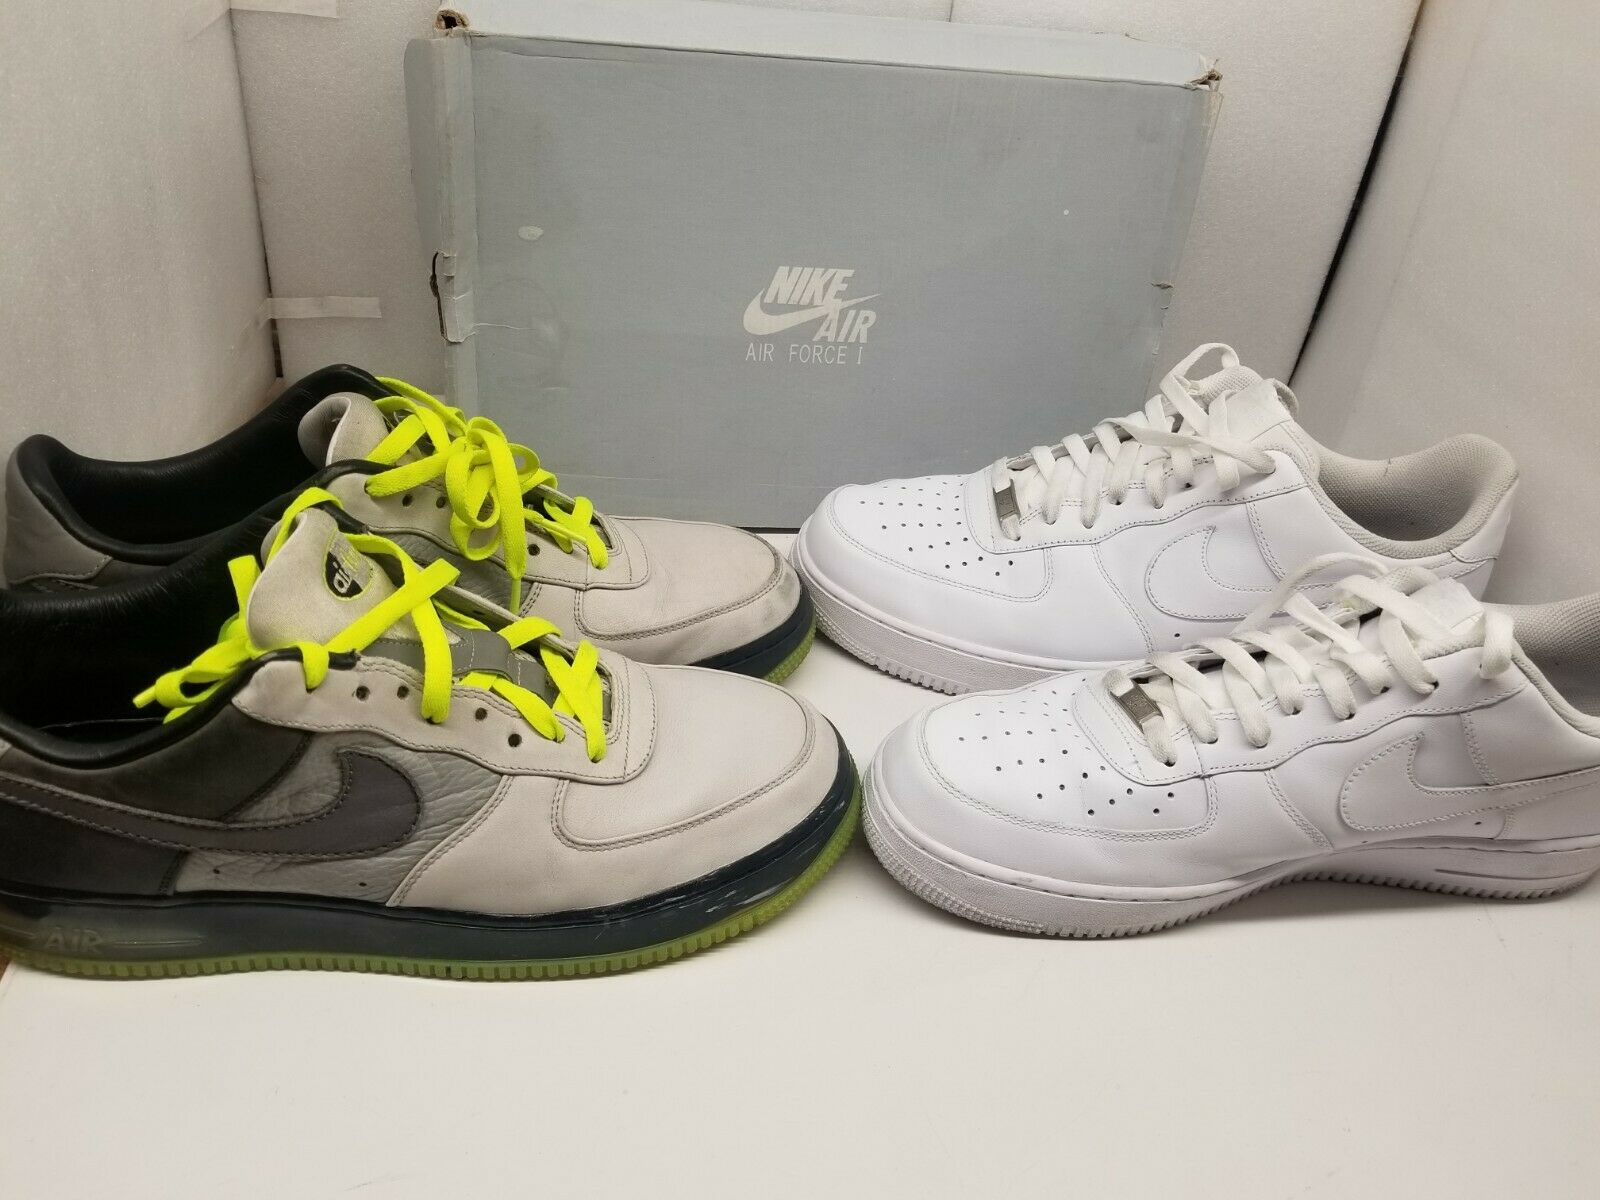 2 NIKE AIR FORCE 1 SHOES MEN SIZE 13.